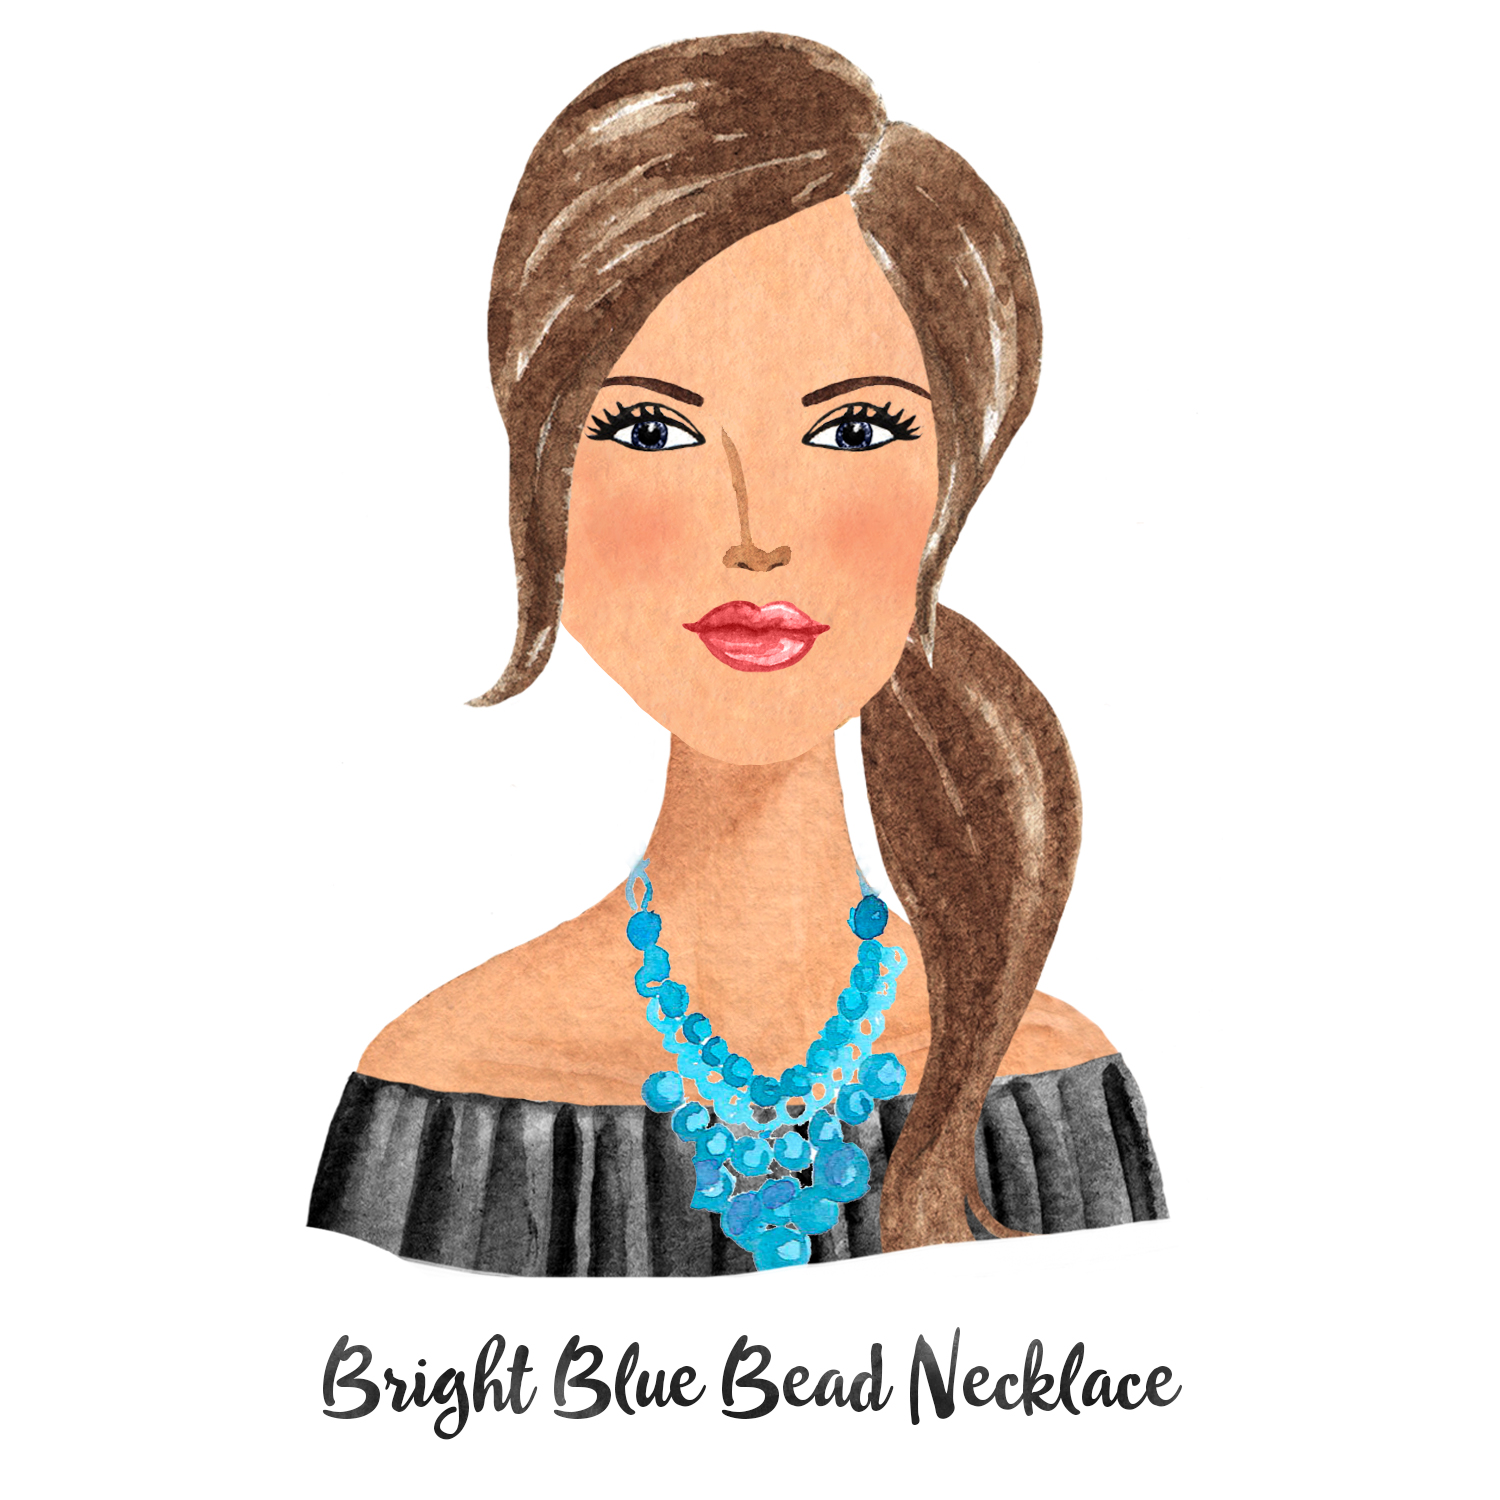 Necklace Bright Blue Beads.jpg